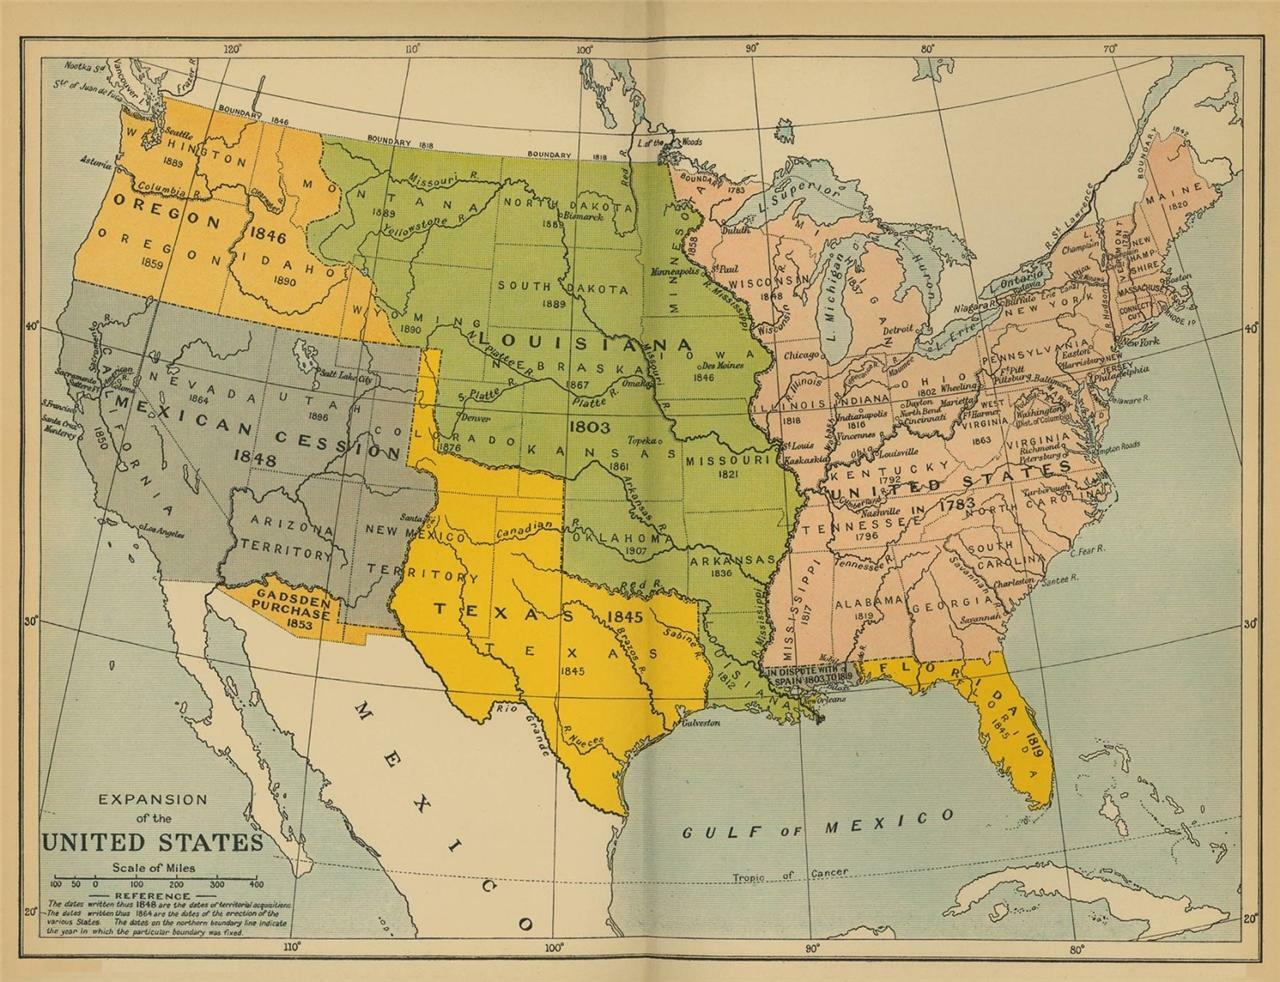 1848 UNITED STATES OF AMERICA COUNTRY MAP GLOSSY POSTER PICTURE PHOTO on united states map bodies of water, united states map 1860, united states map southeast usa, united states canada mexico, united states map 1800, united states map 1836, united states map grade 1, united states map 1846, united states political map 2012, united states declares war on mexico, united states map 1865, united states map 1848, united states map 1820, united states map 1812, united states map 1823, united states map 1821, united states map 1830, united states political map with cities, united states map 1850, united states map 1847,